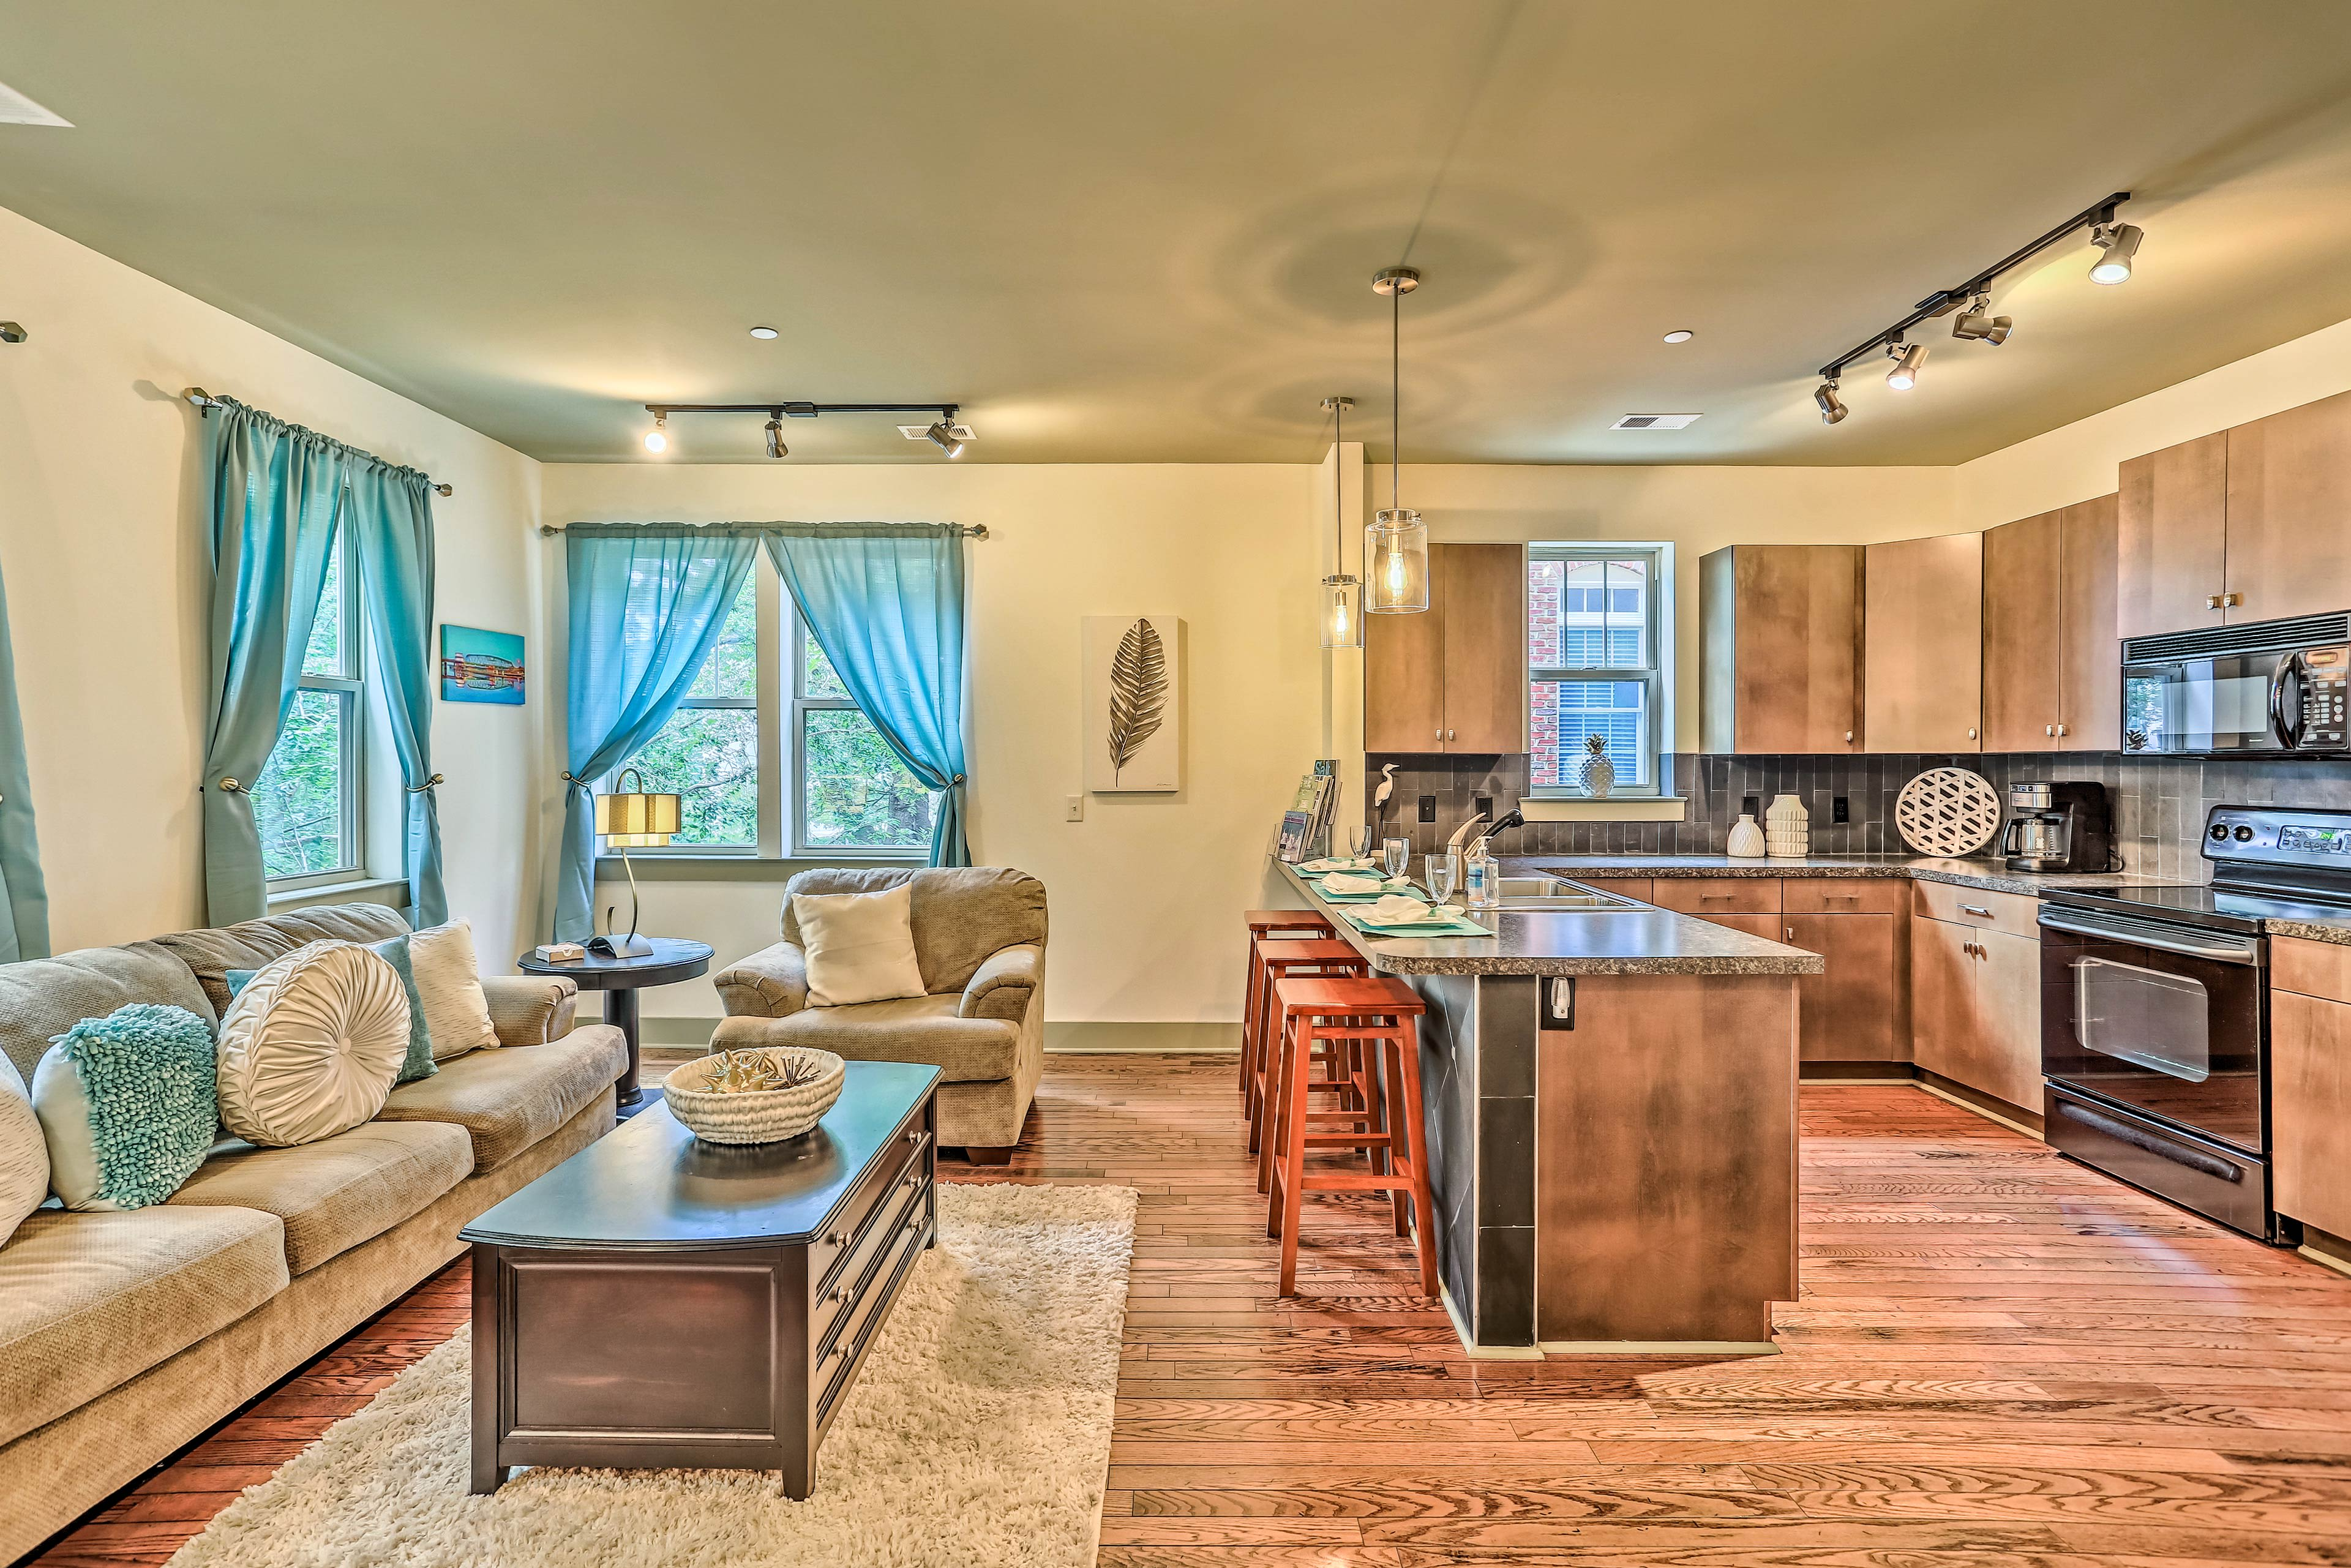 The open floor plan keeps the unit feeling airy and comfortable.